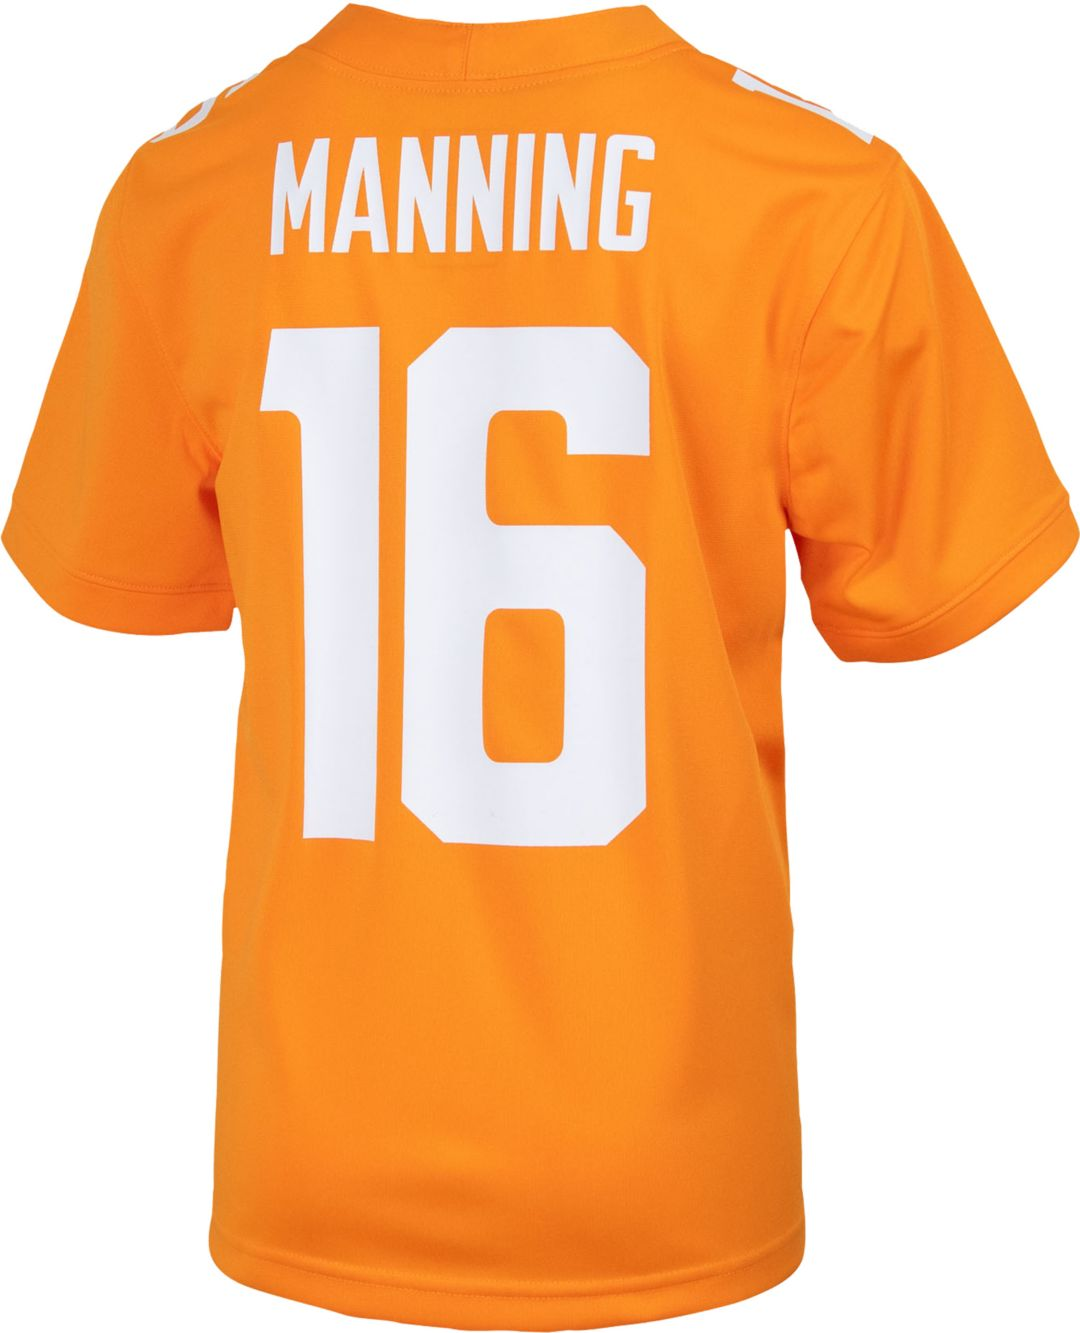 brand new 198a3 c1d7a Nike Youth Peyton Manning Tennessee Volunteers #16 Tennessee Orange Replica  Football Jersey